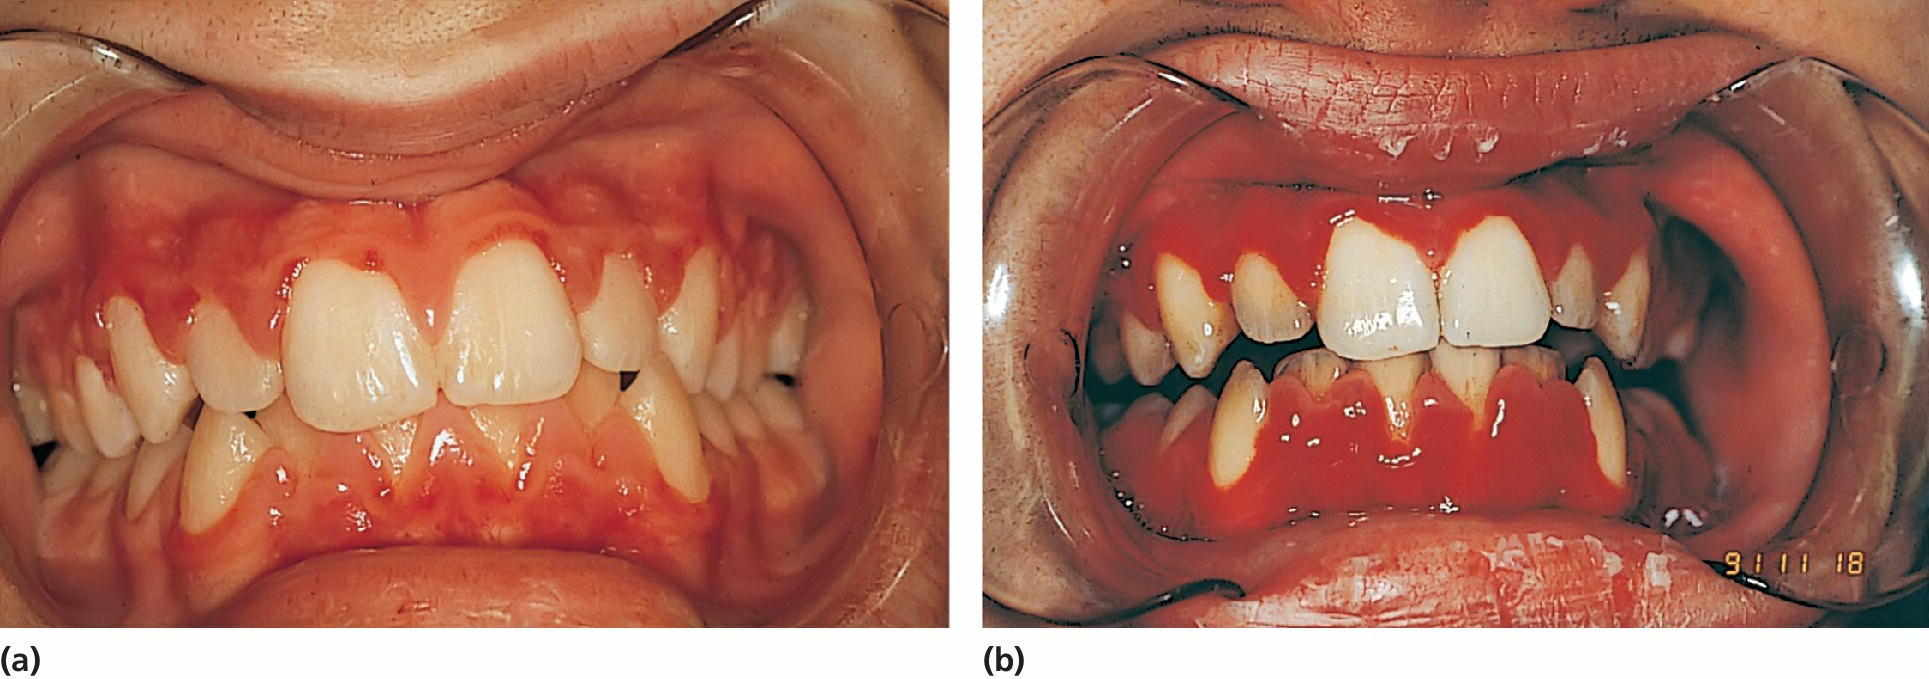 Left: Photo of a 15‐year‐old boy with aplastic anemia prescribed cyclosporine medication. Right: Photo of an 18-year-old boy with deteriorating gingival health coincidental with a hematological crisis.